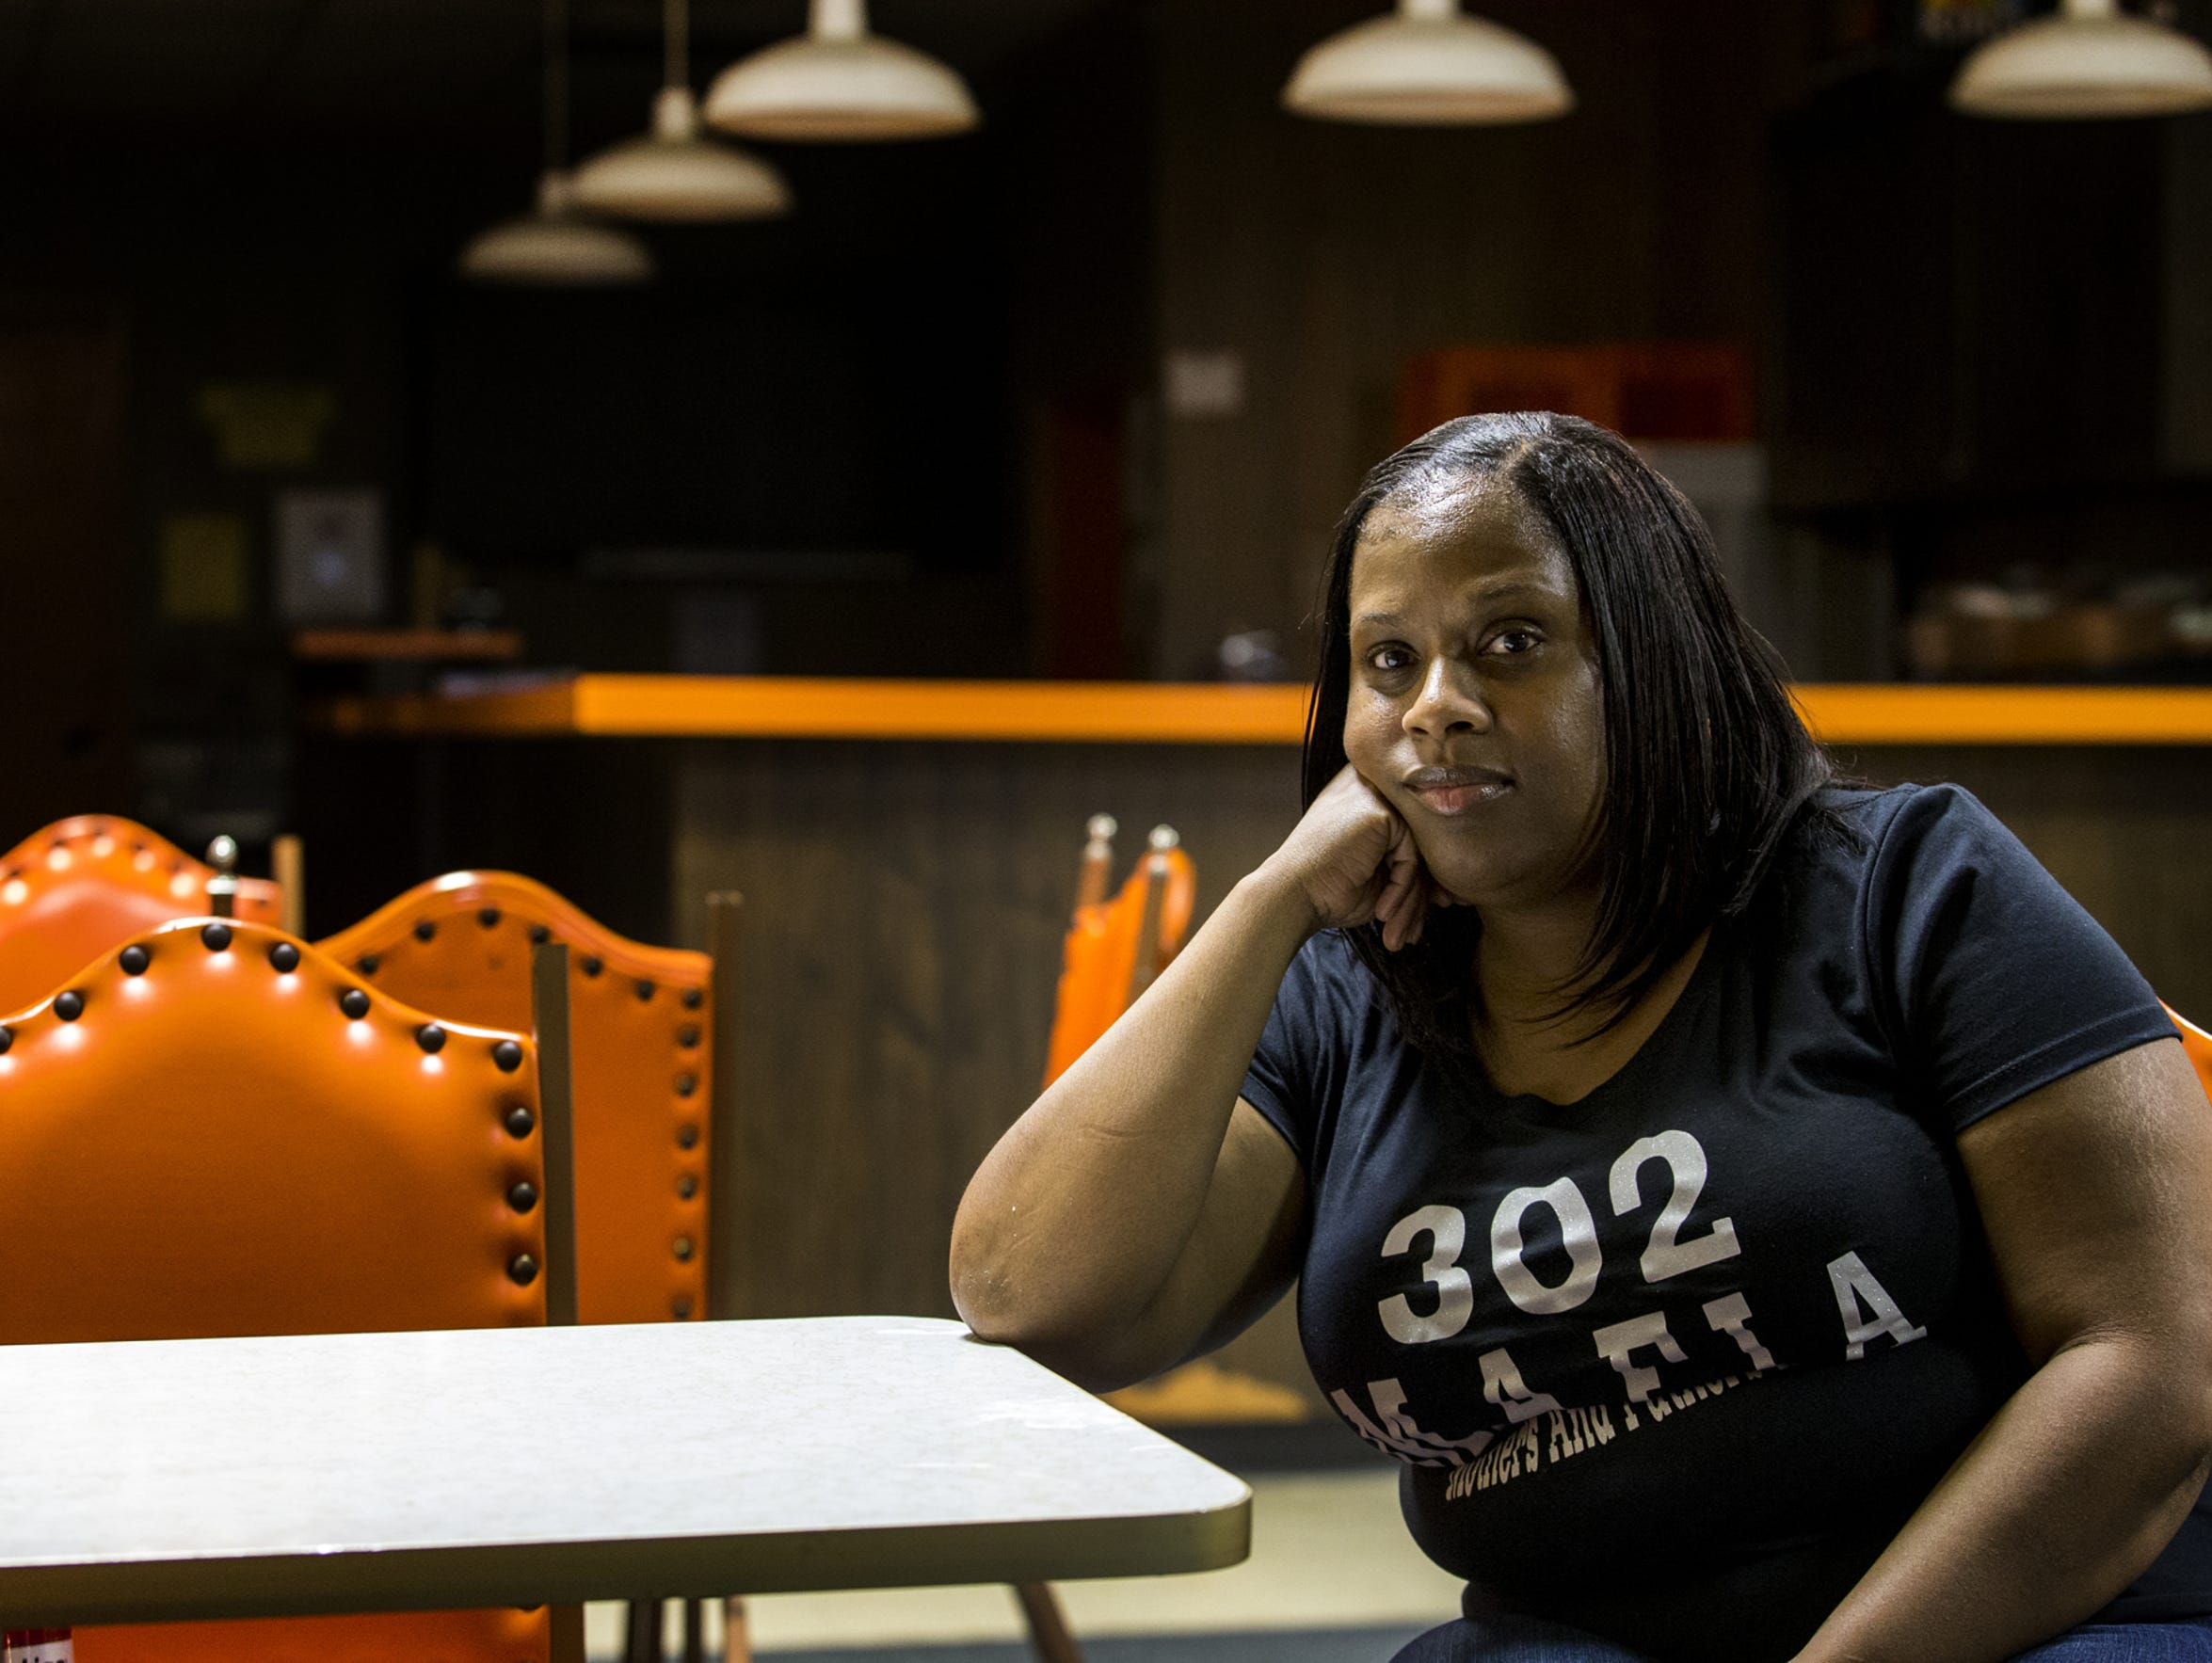 Latisha Jackson, mother of Jahlil Lewis, sits in the